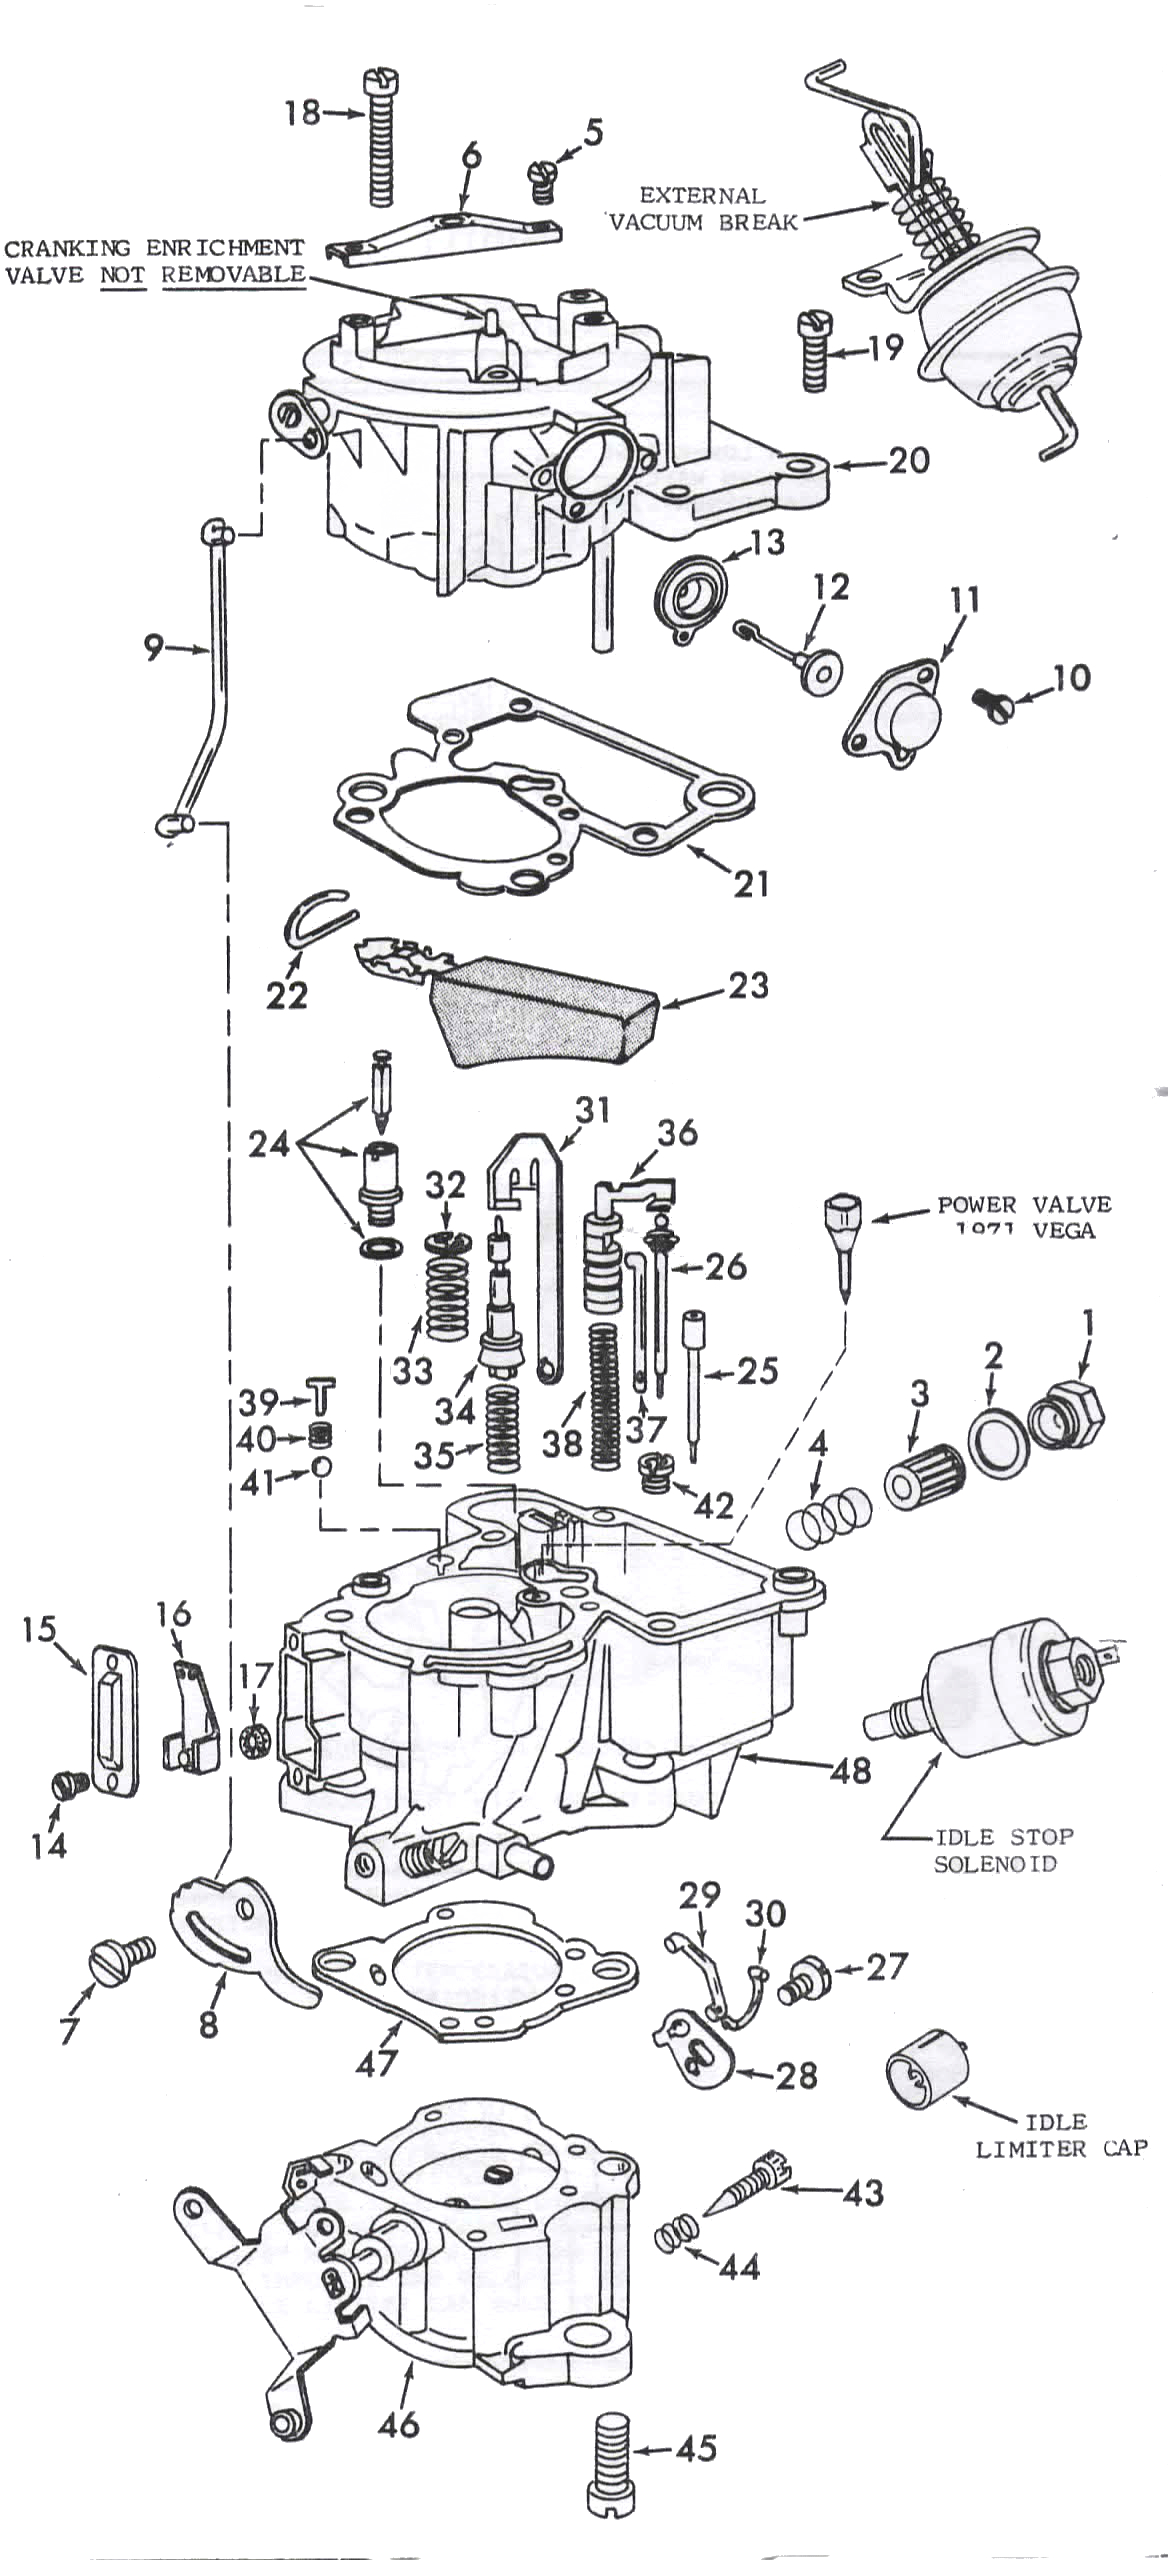 Monojet Exploded View